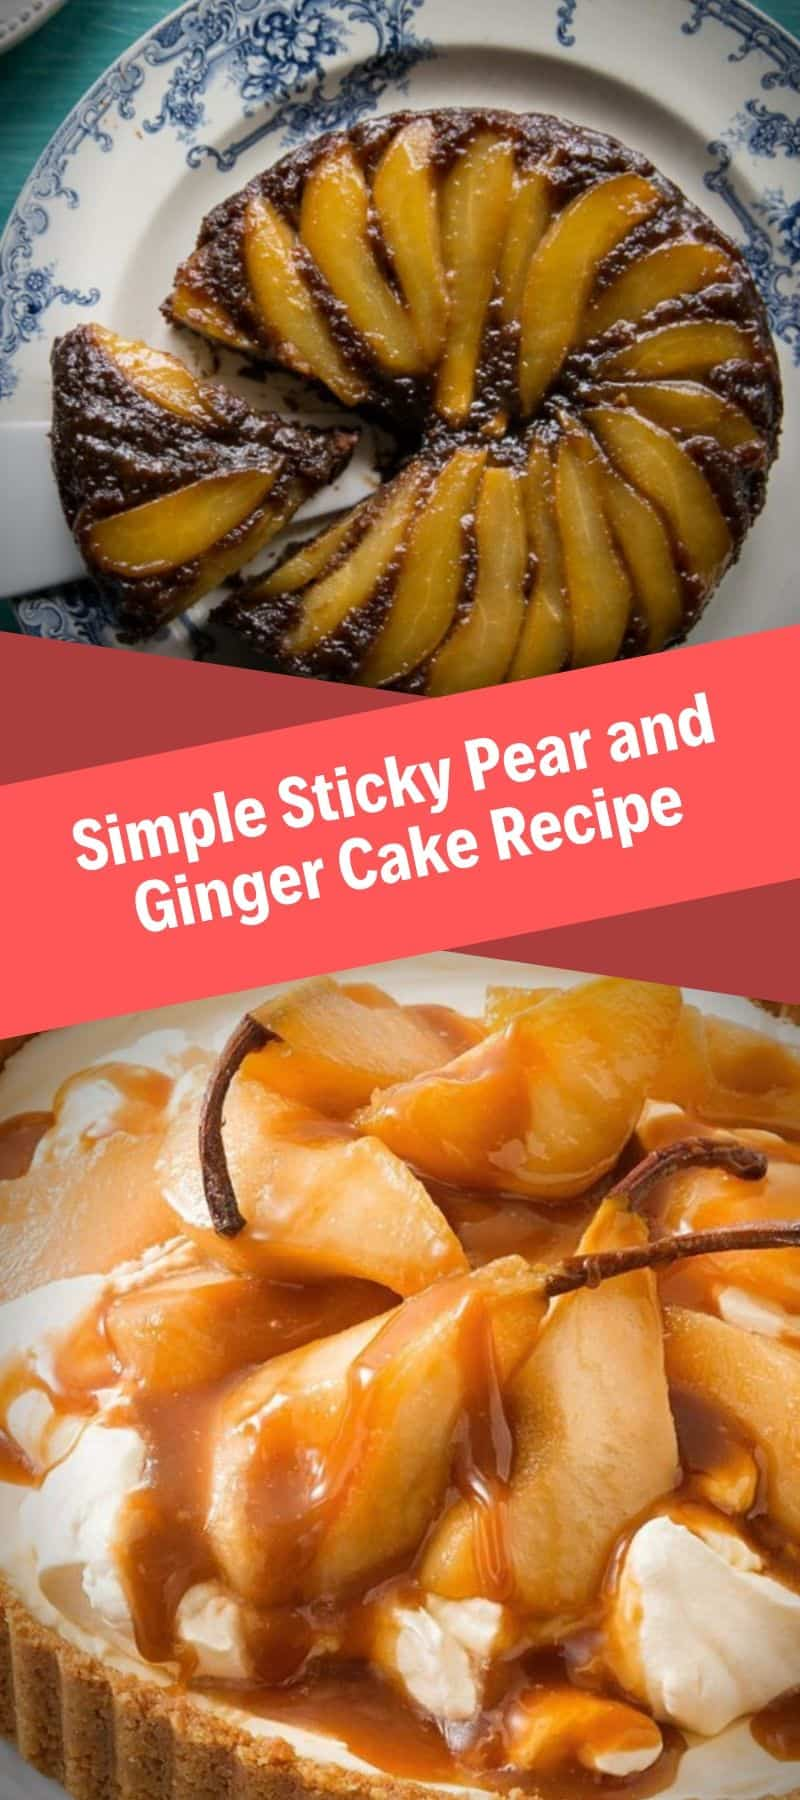 Simple Sticky Pear and Ginger Cake Recipe